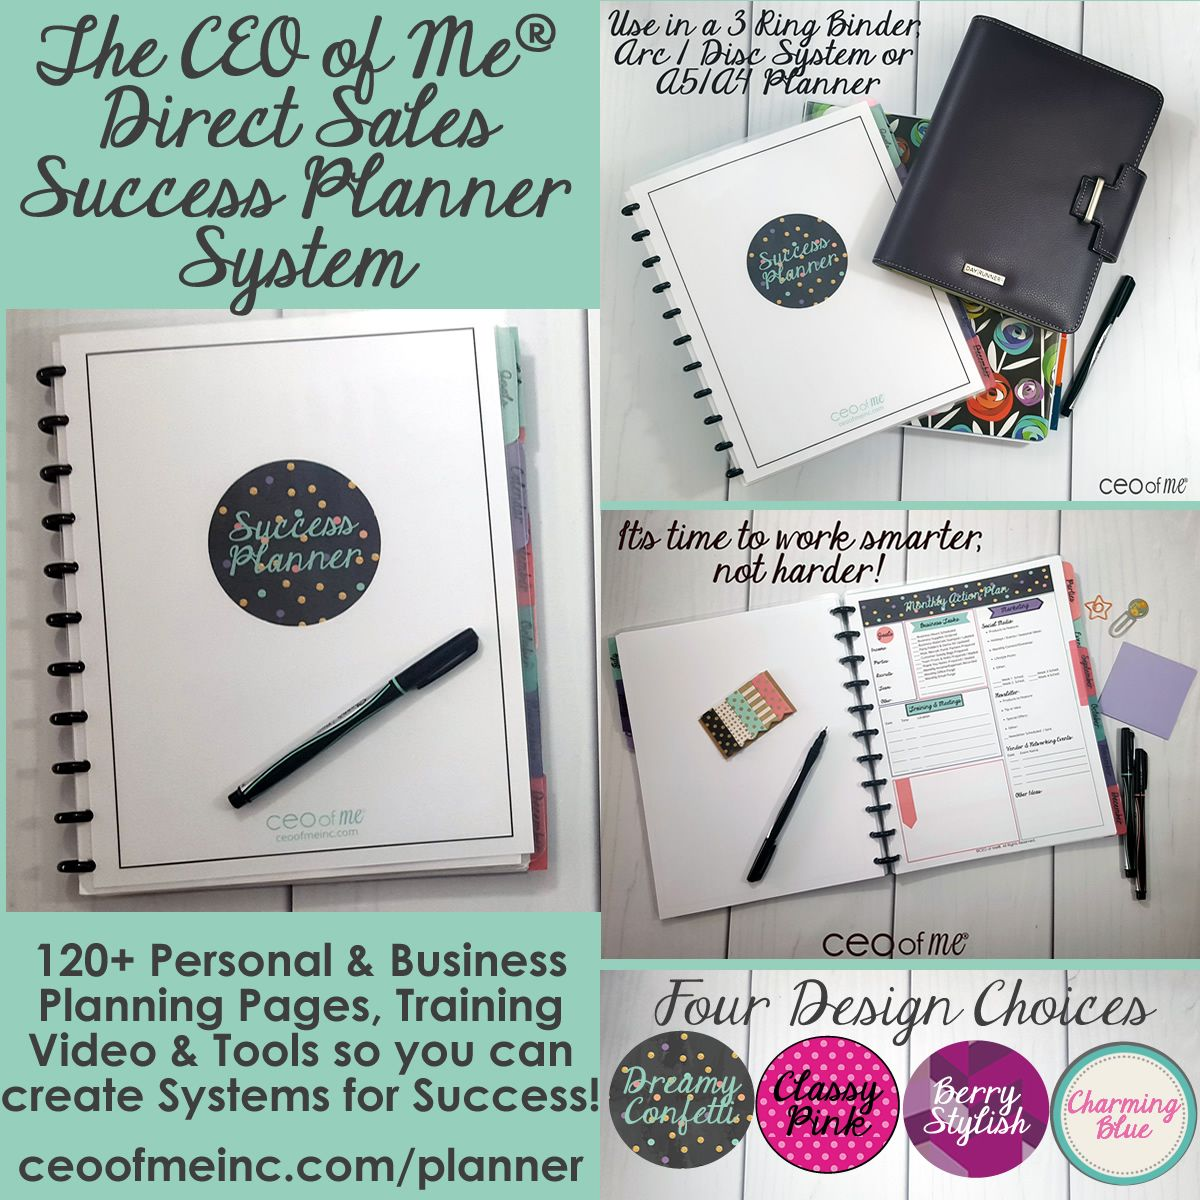 Direct Sales Network Marketing Printable Planner Systems Toolkit #scentsylaborday